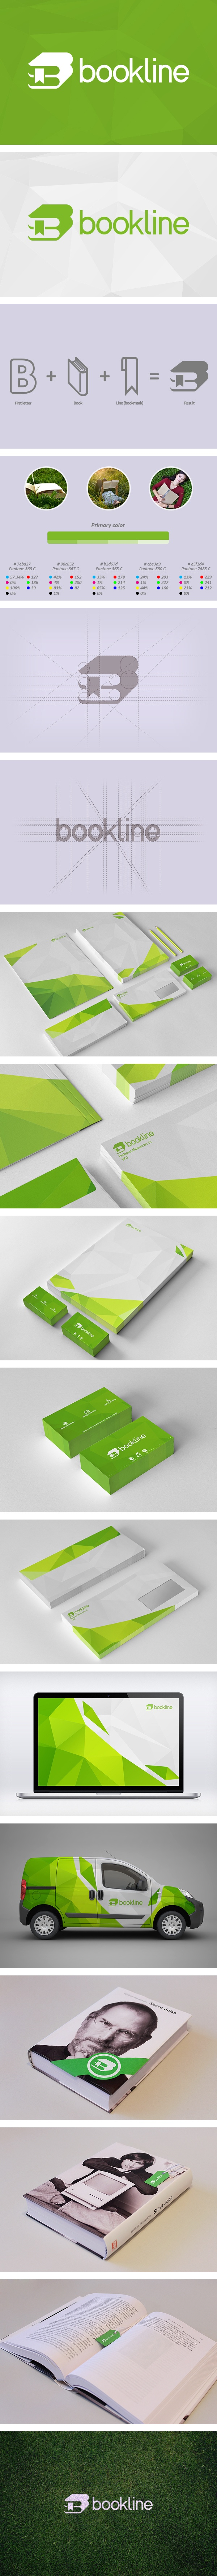 Think of branding as a logo with matching accessories